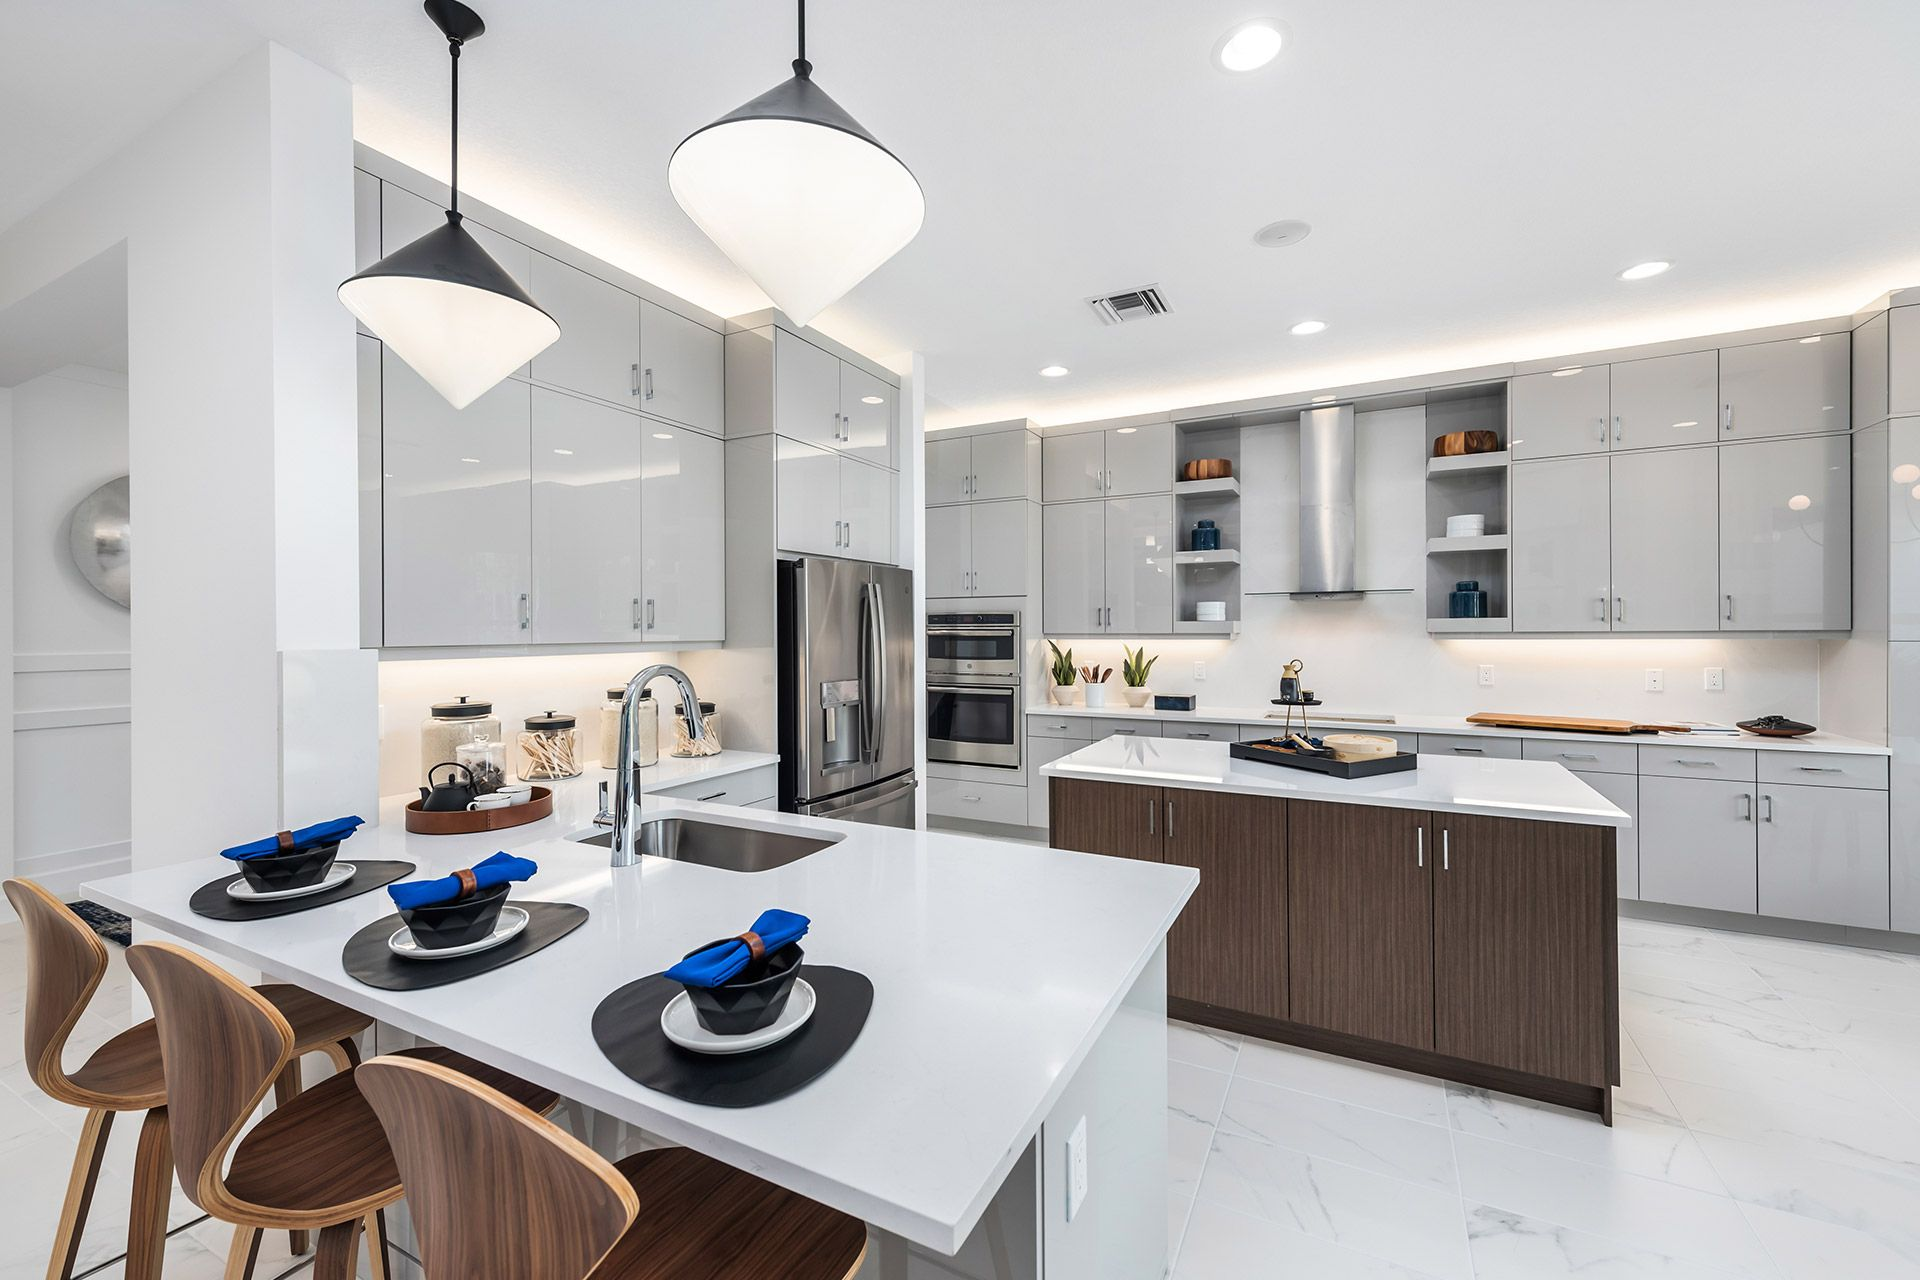 Kitchen featured in the Marina By GL Homes in Naples, FL